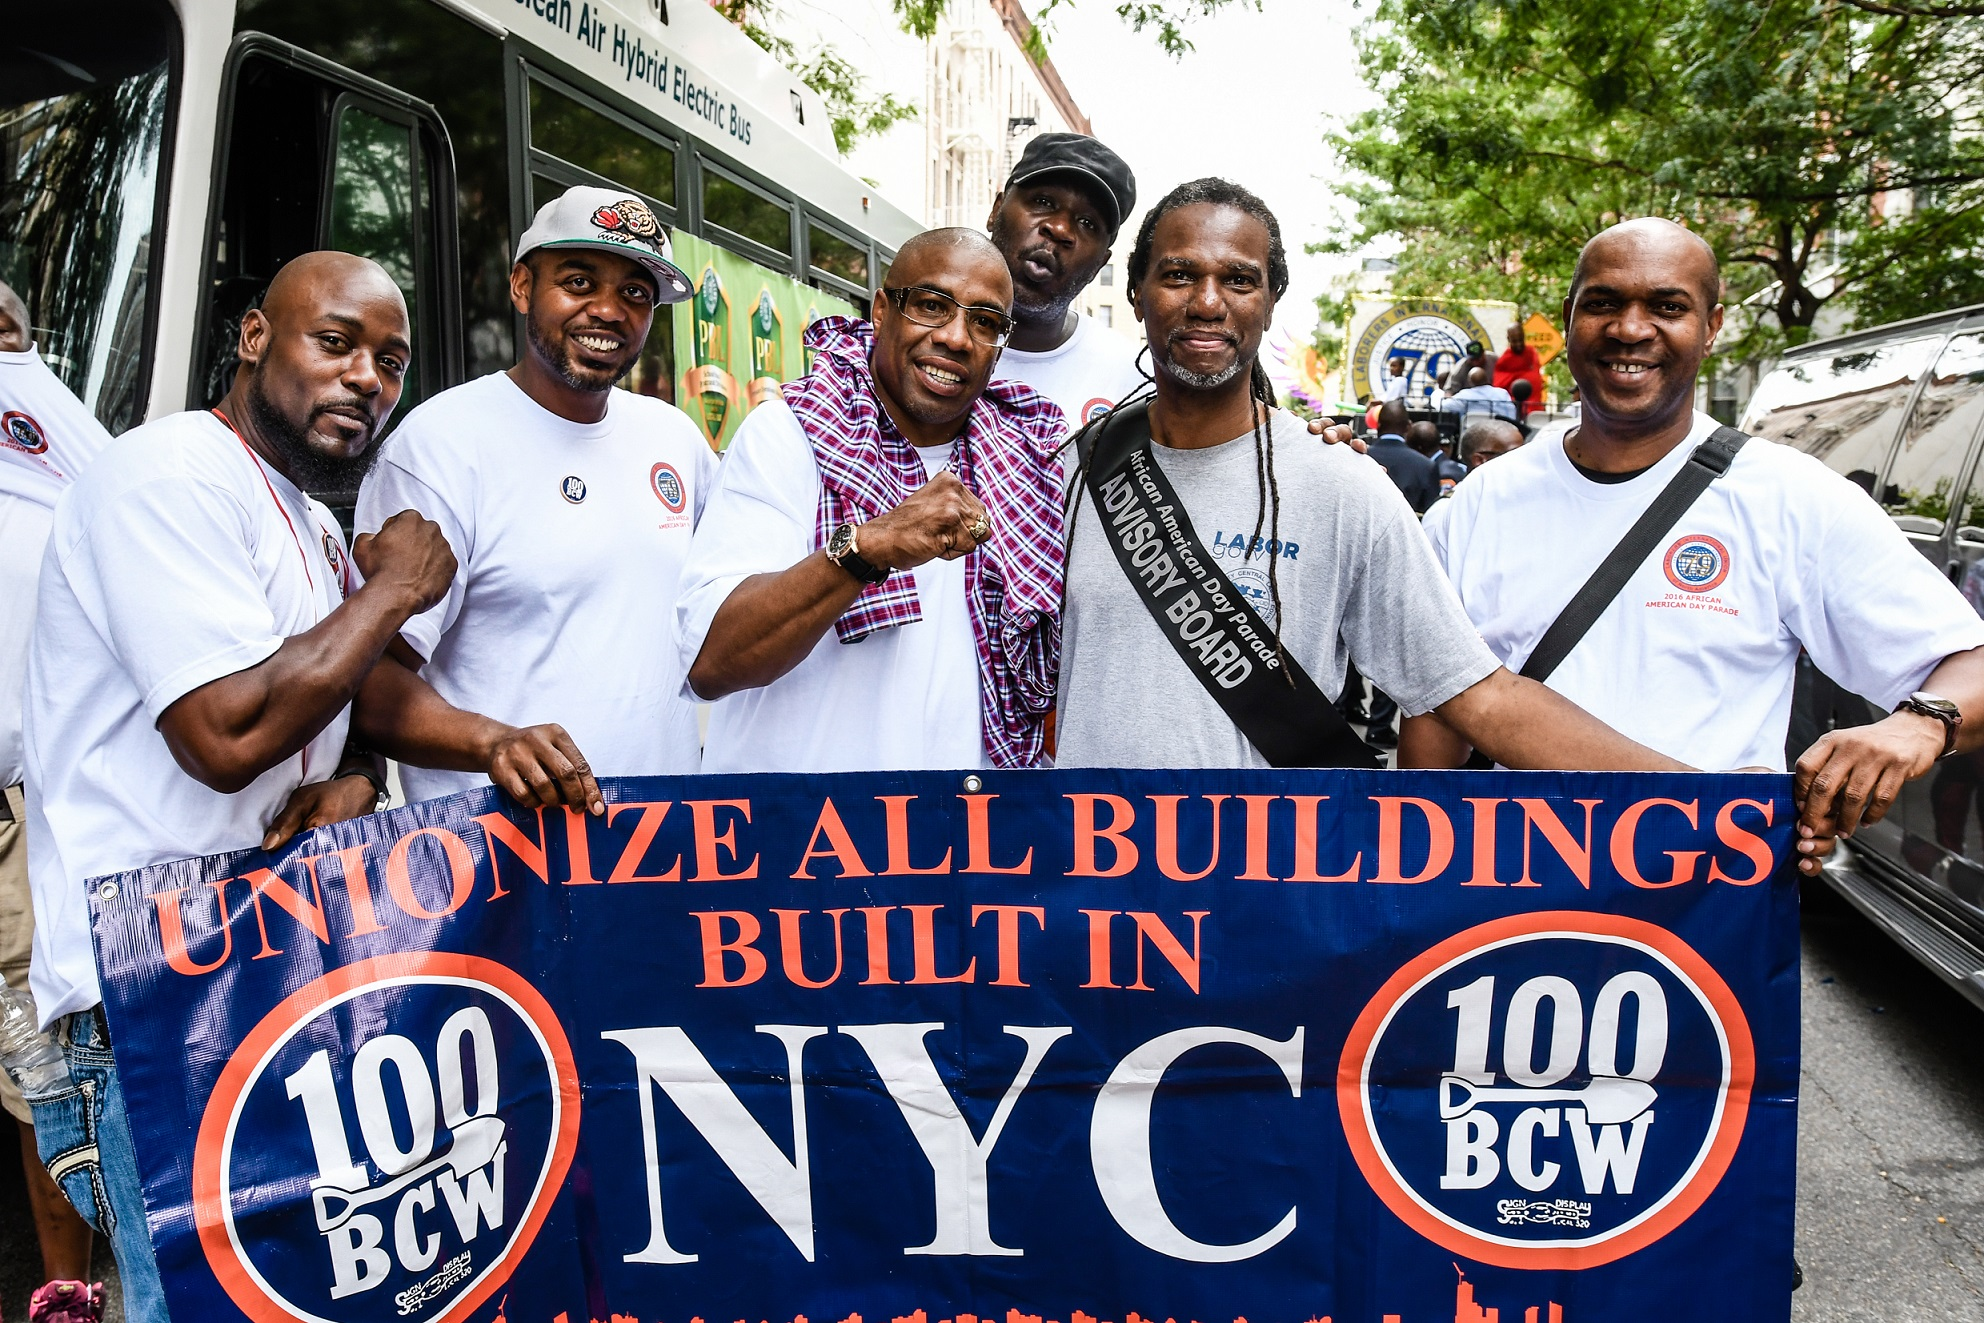 african american day parade 2016 construction general building